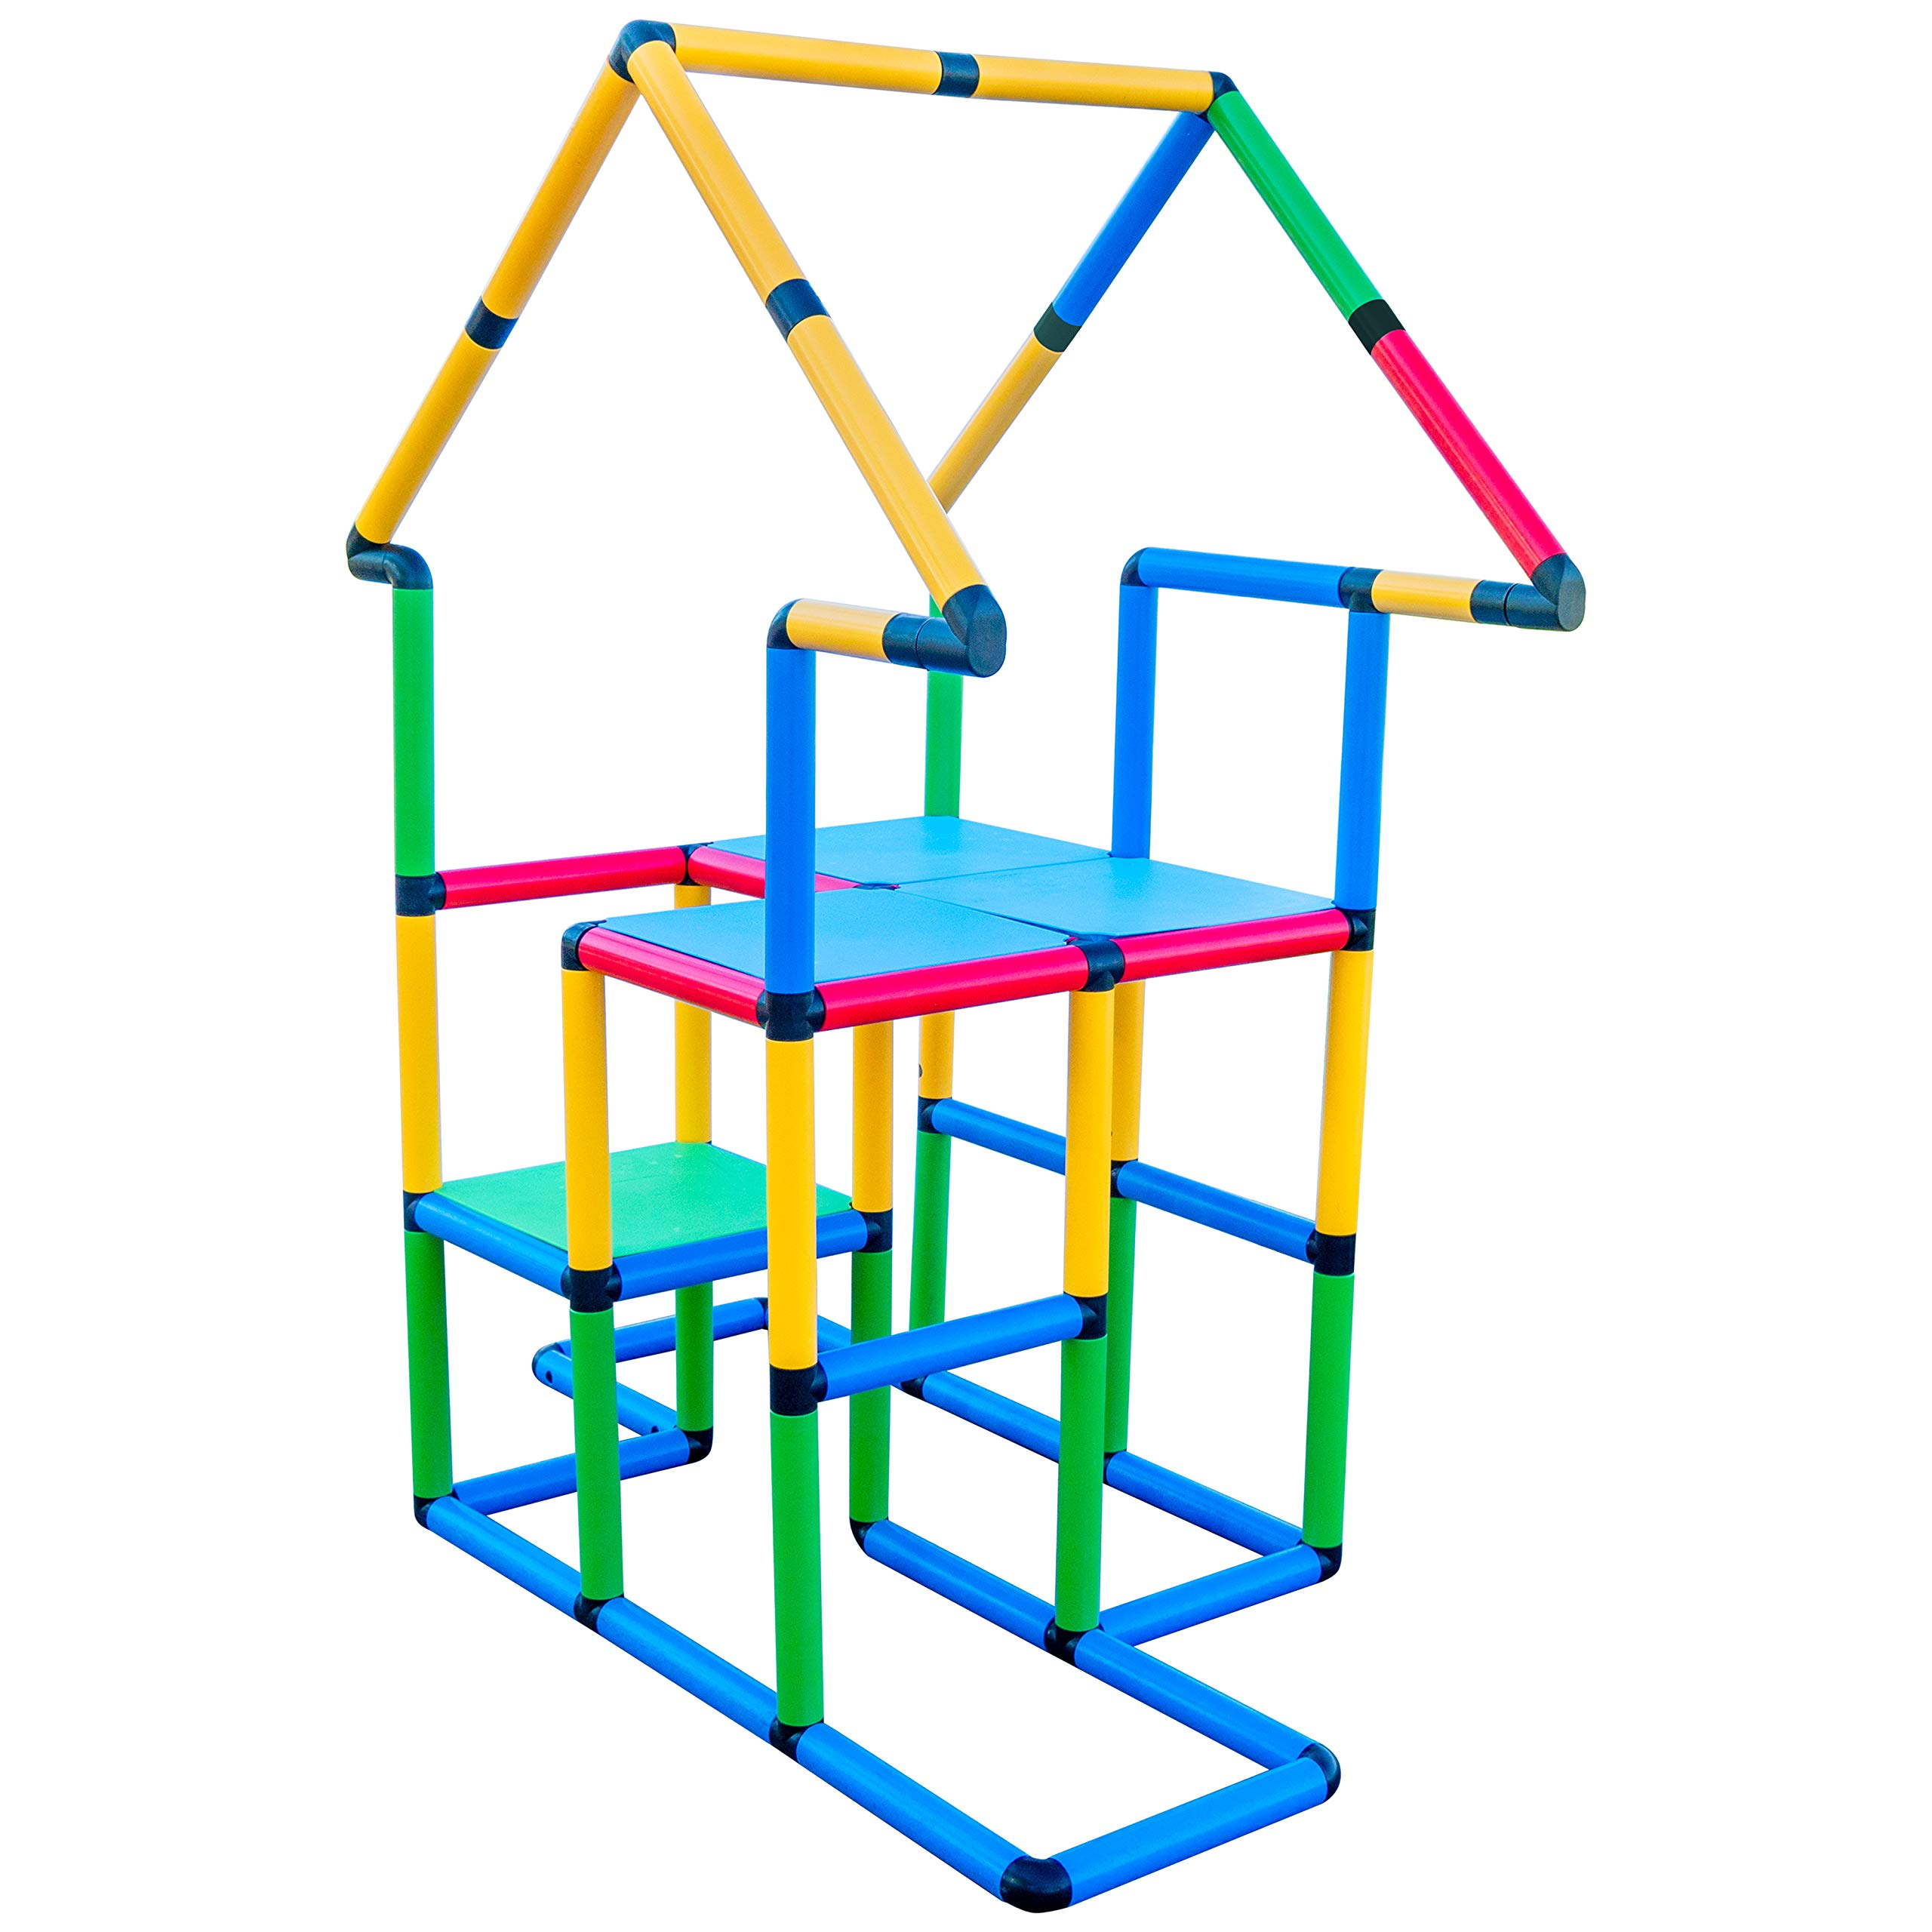 Funphix Deluxe 296 Piece Construction Toy Set - Building Play-Structures for Indoors & Outdoors - Fun & Educational Learning Toys for Ages 2 to 12 by Funphix (Image #5)